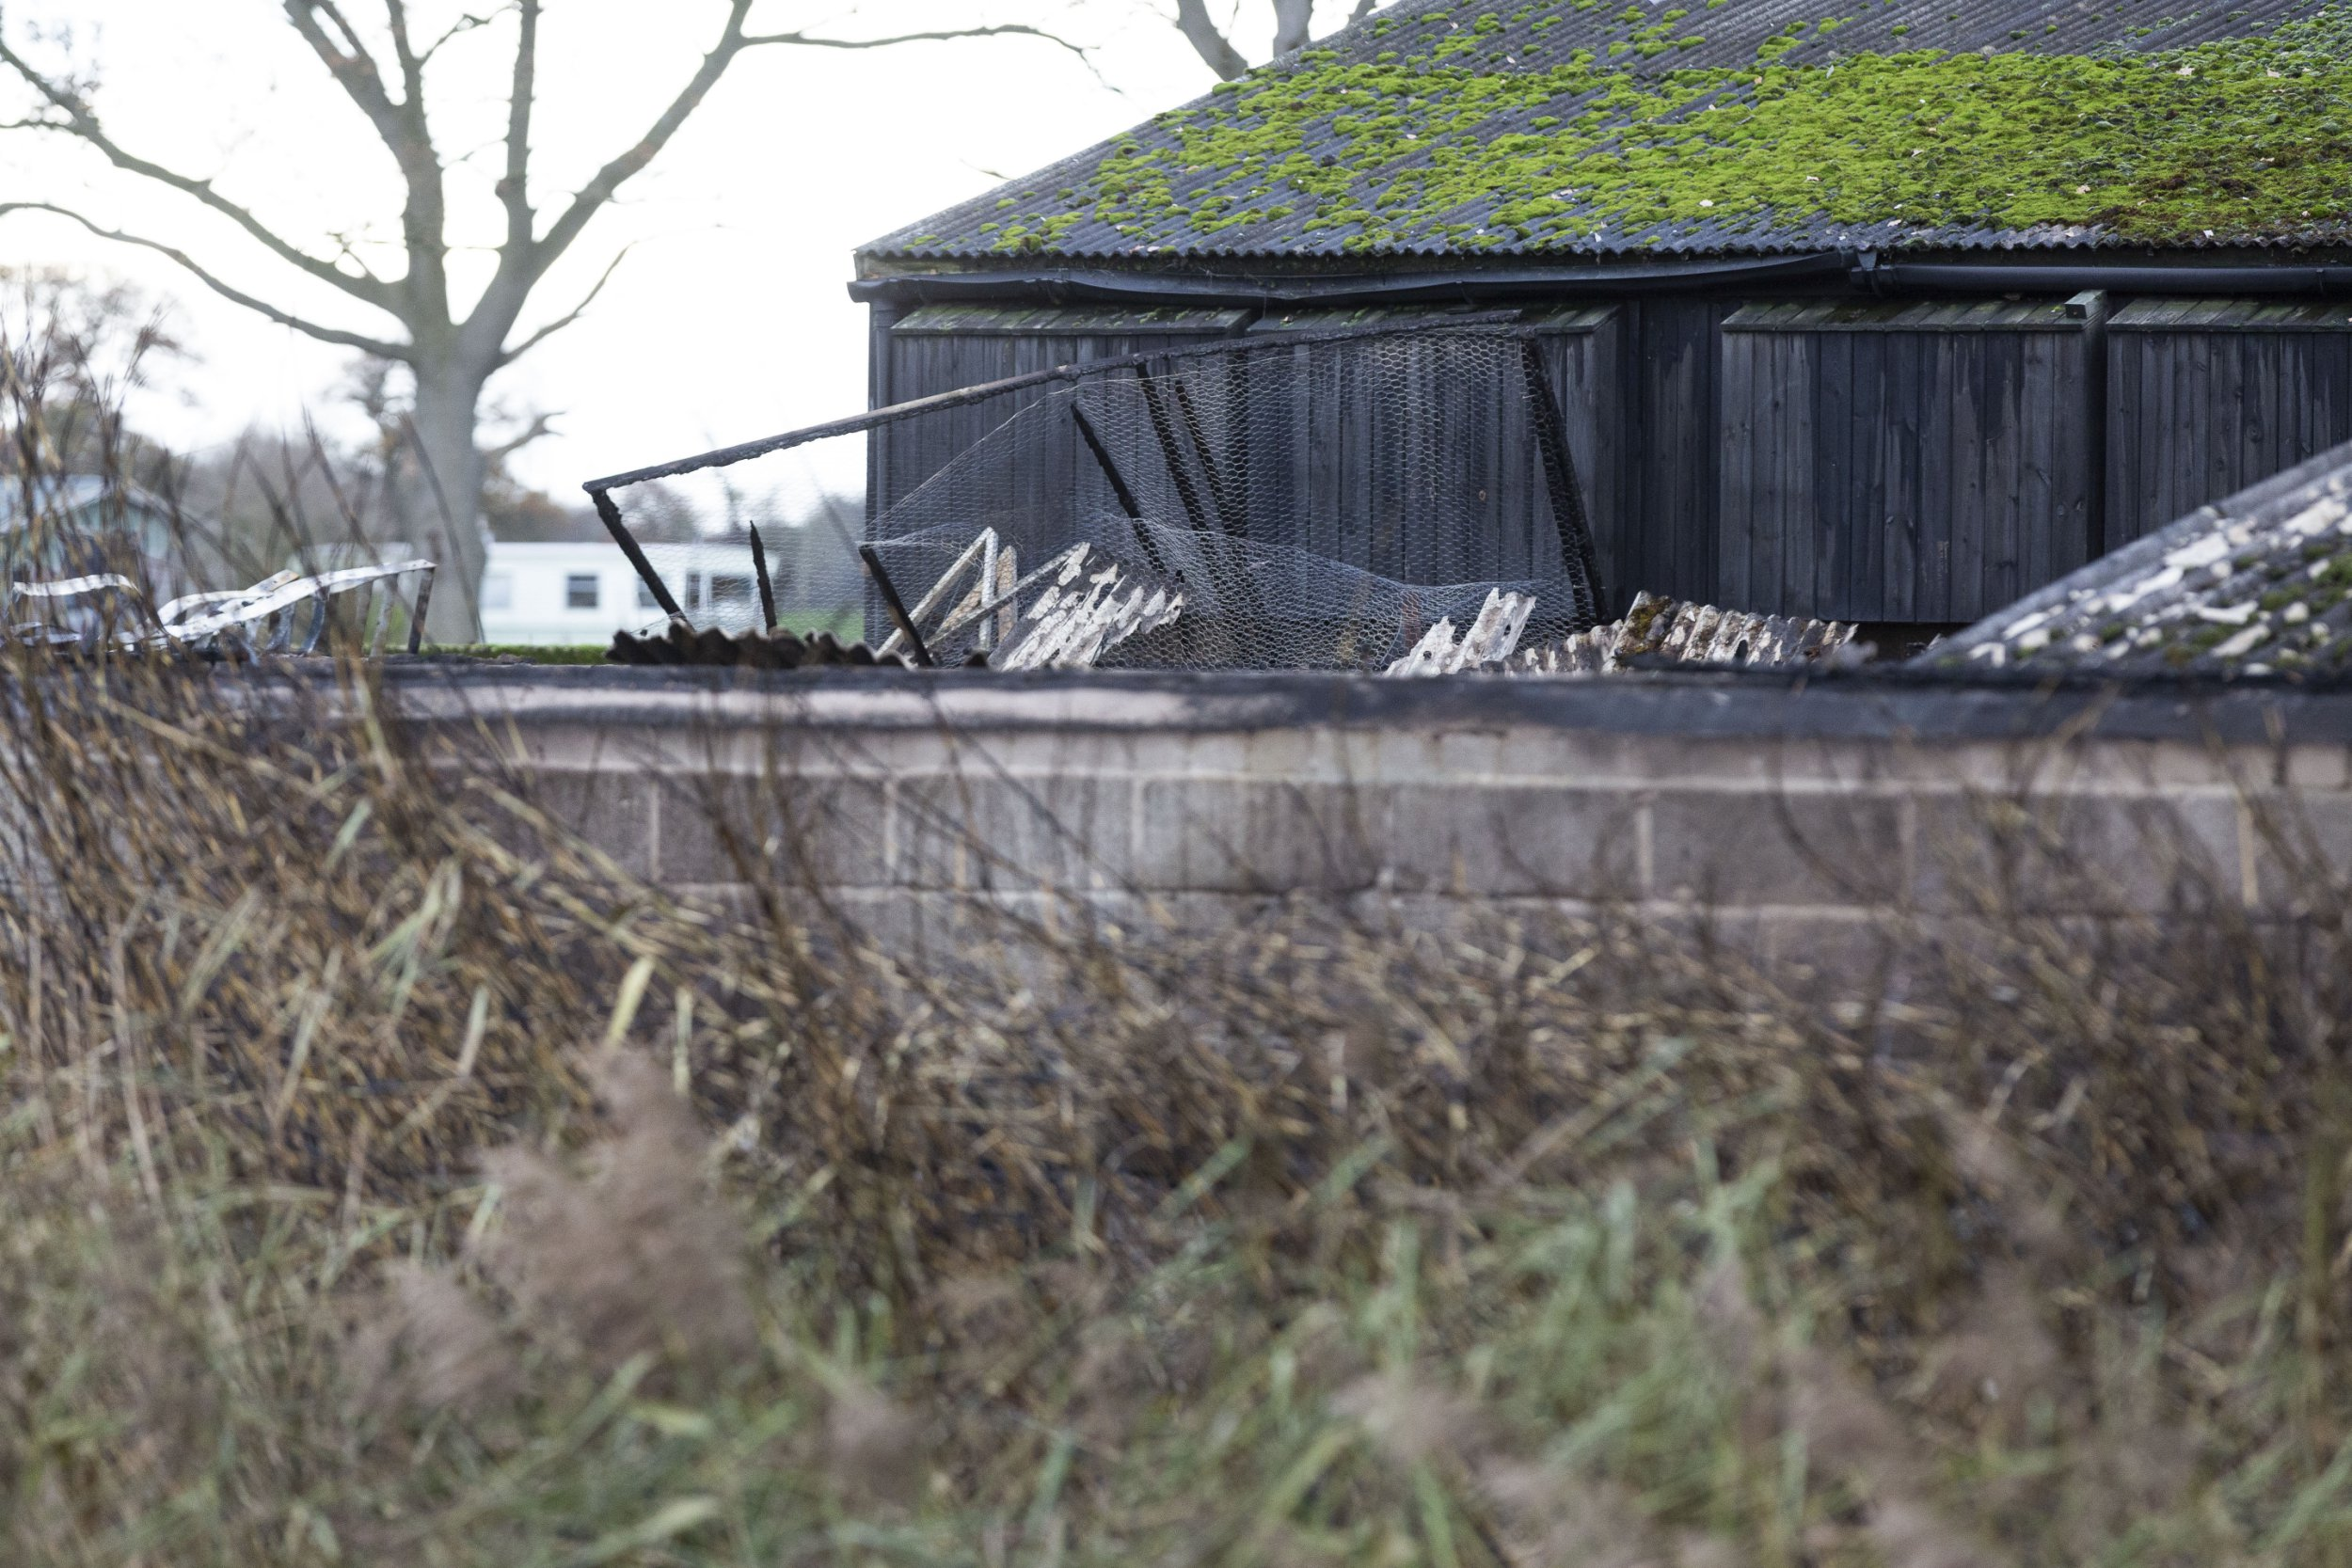 The site where a fire killed over 21,000 chicks. Over 21,000 chicks have been killed in a fire in Preston yesterday evening. The fire broke out at around 8pm on the 13th November 2018 on a chick farm in Salwick, Preston. SWLEchicks